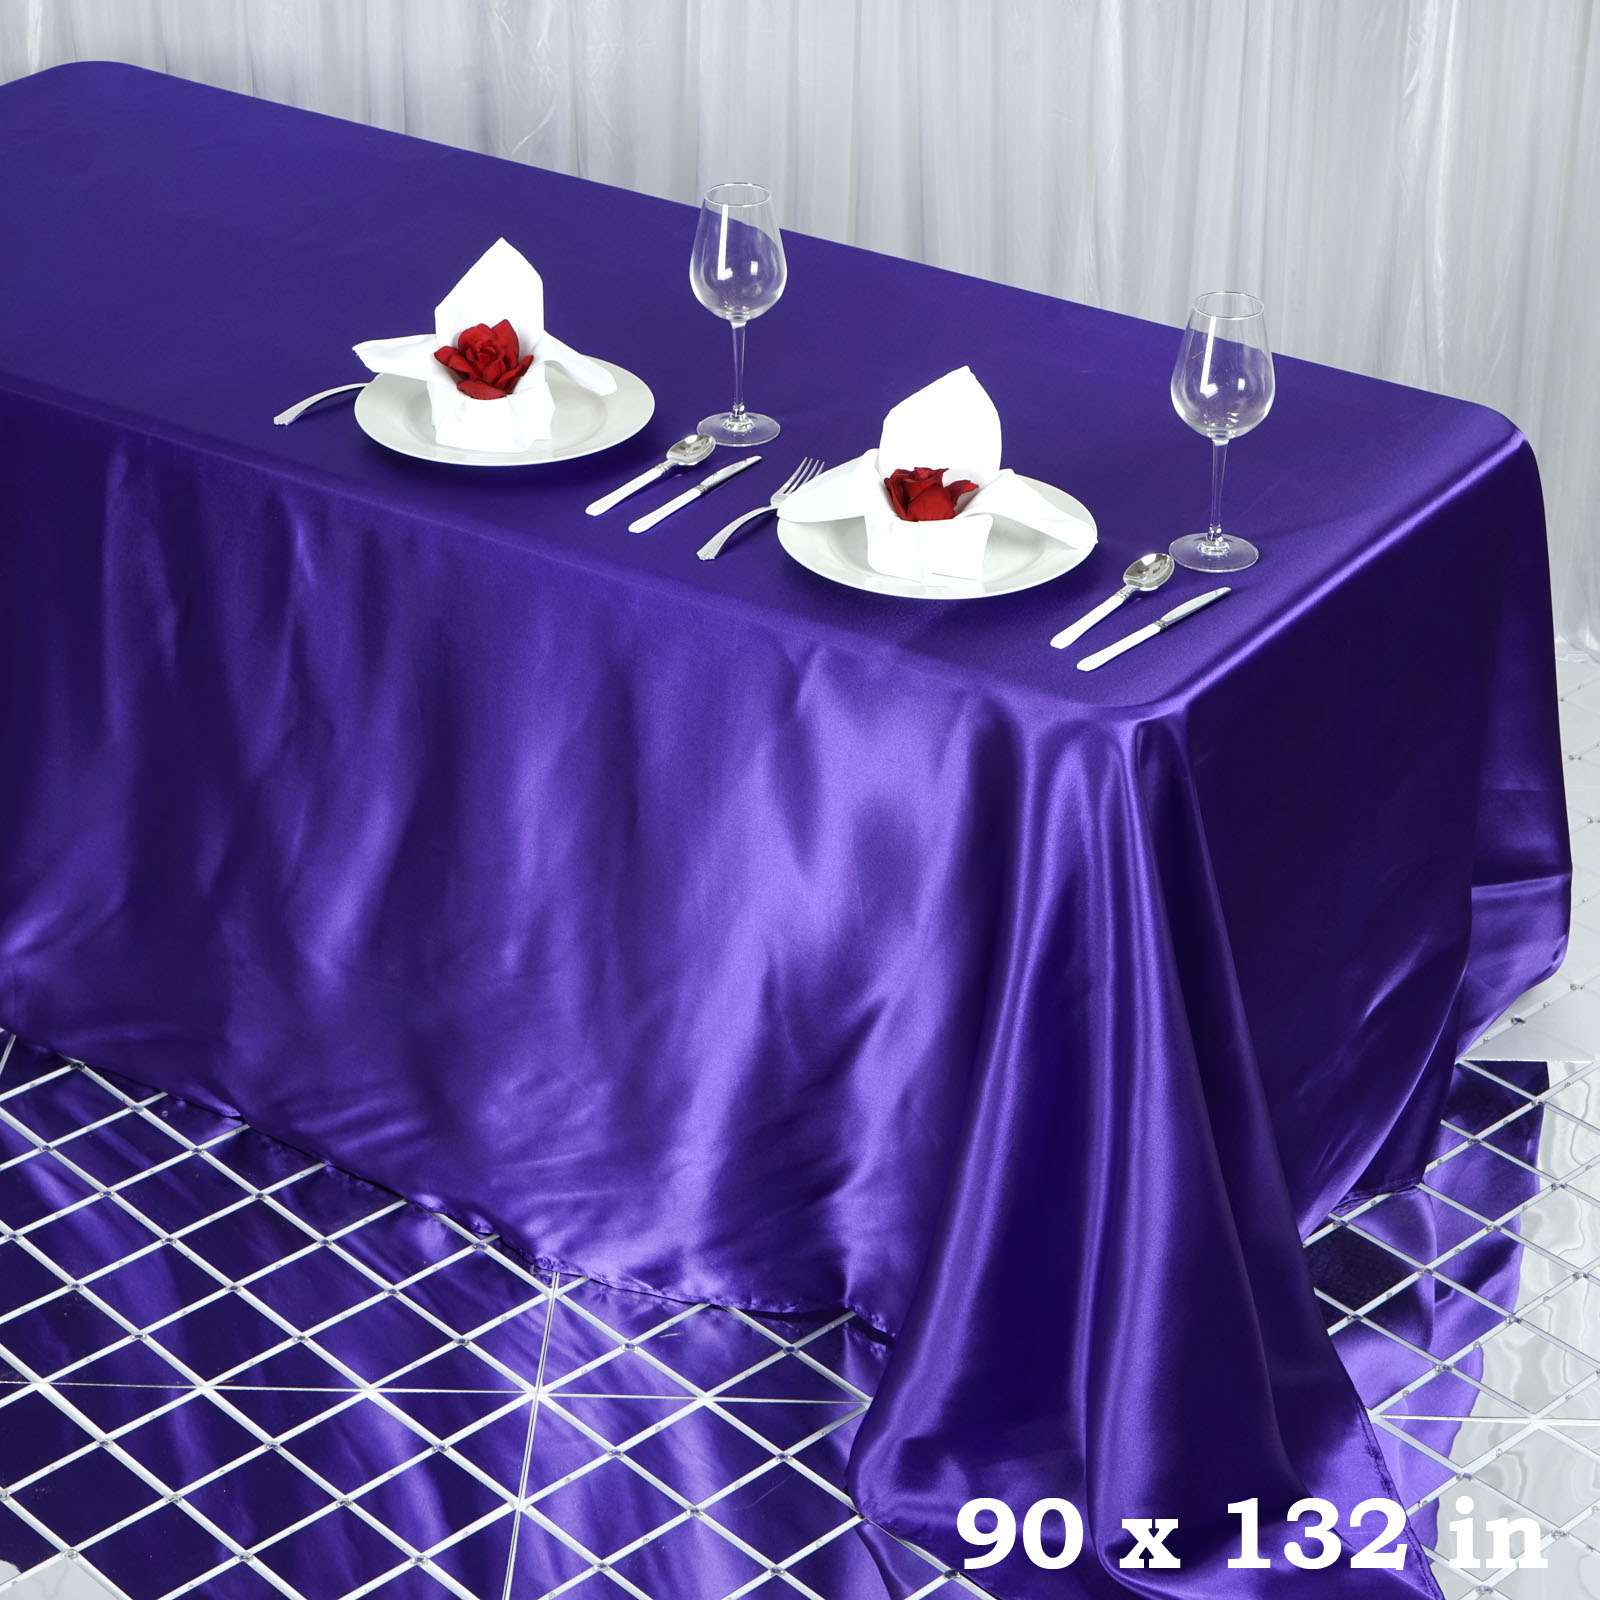 """BalsaCircle 90"""" x 132"""" Rectangular Satin Tablecloth Table Covers for Party Wedding Reception Catering Dining Home Table Linens"""